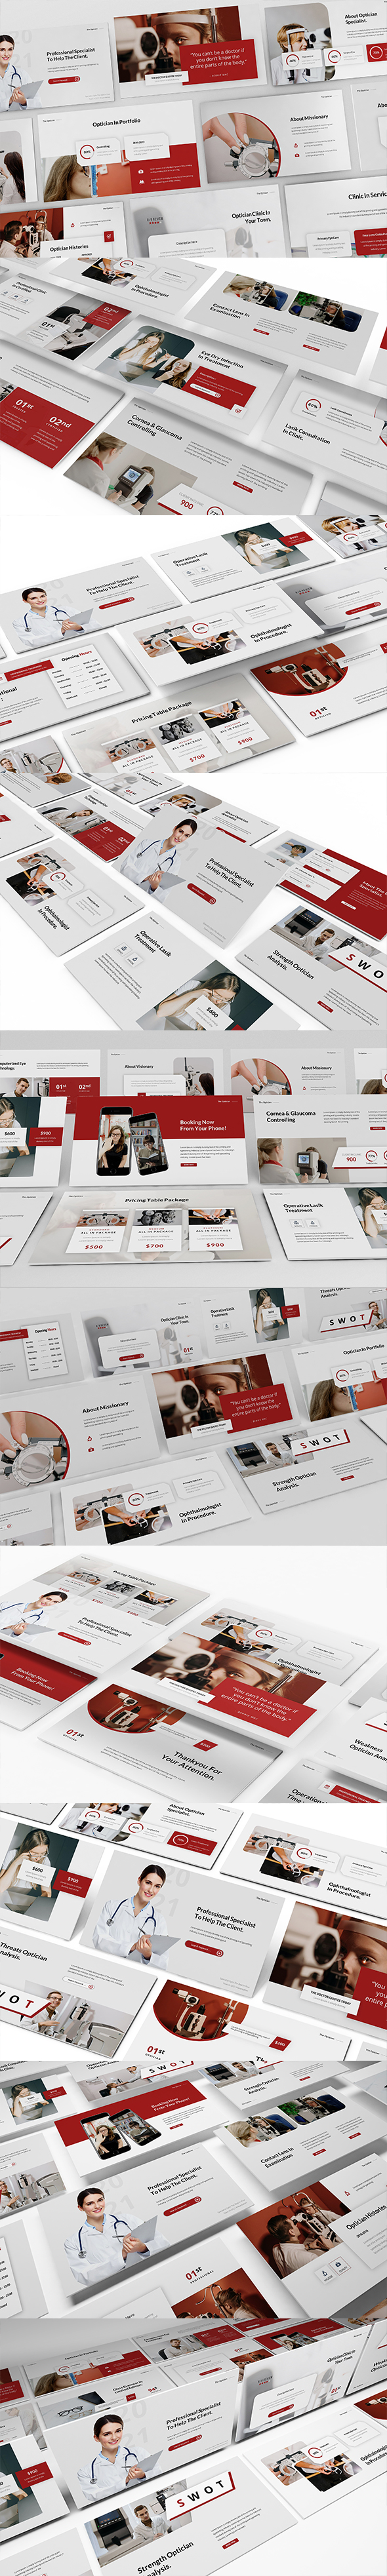 Optician Specialist Google Slides Presentation Template